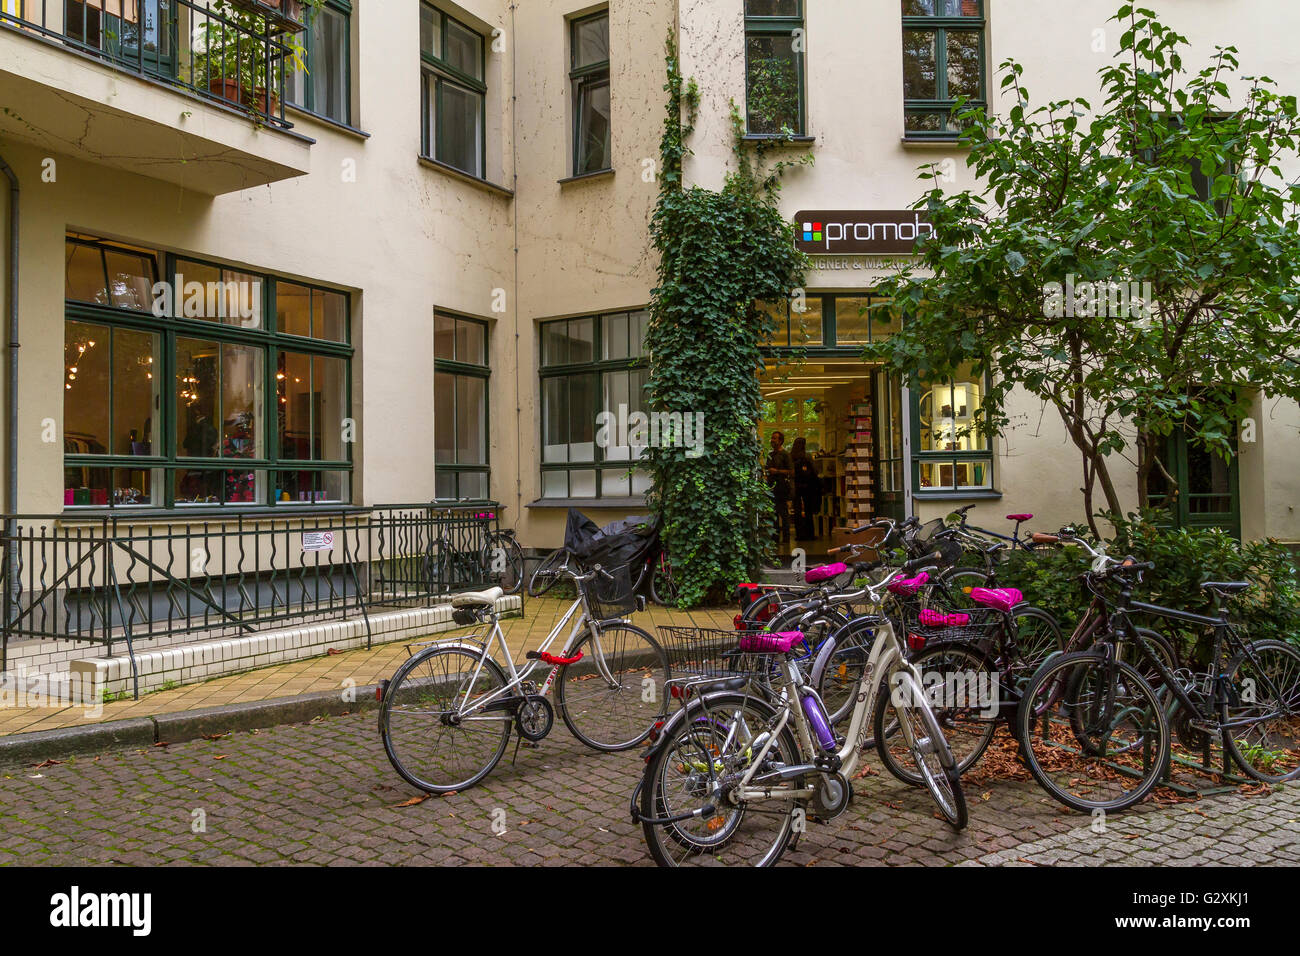 A collection of bicycles parked on a cobbled street Stock Photo